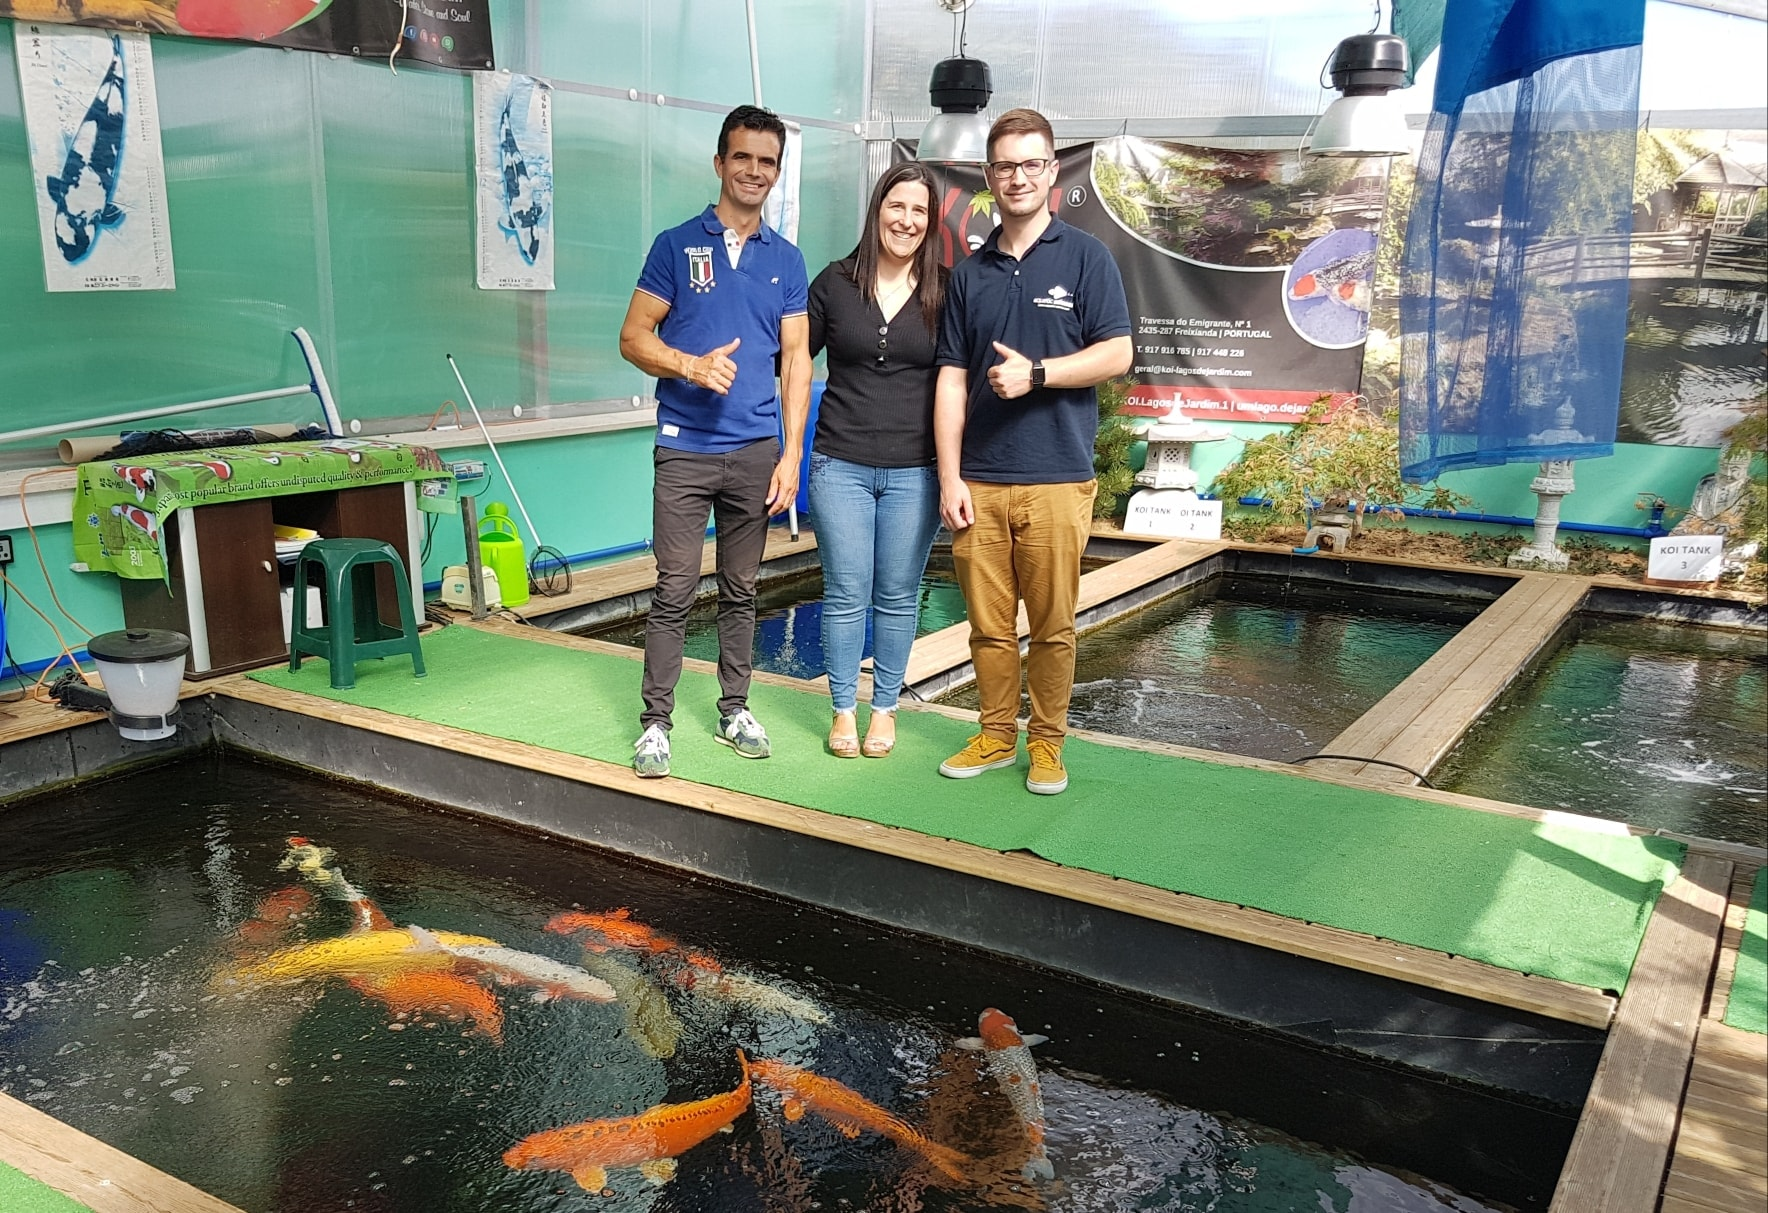 Visita da Aquatic Science à KOI